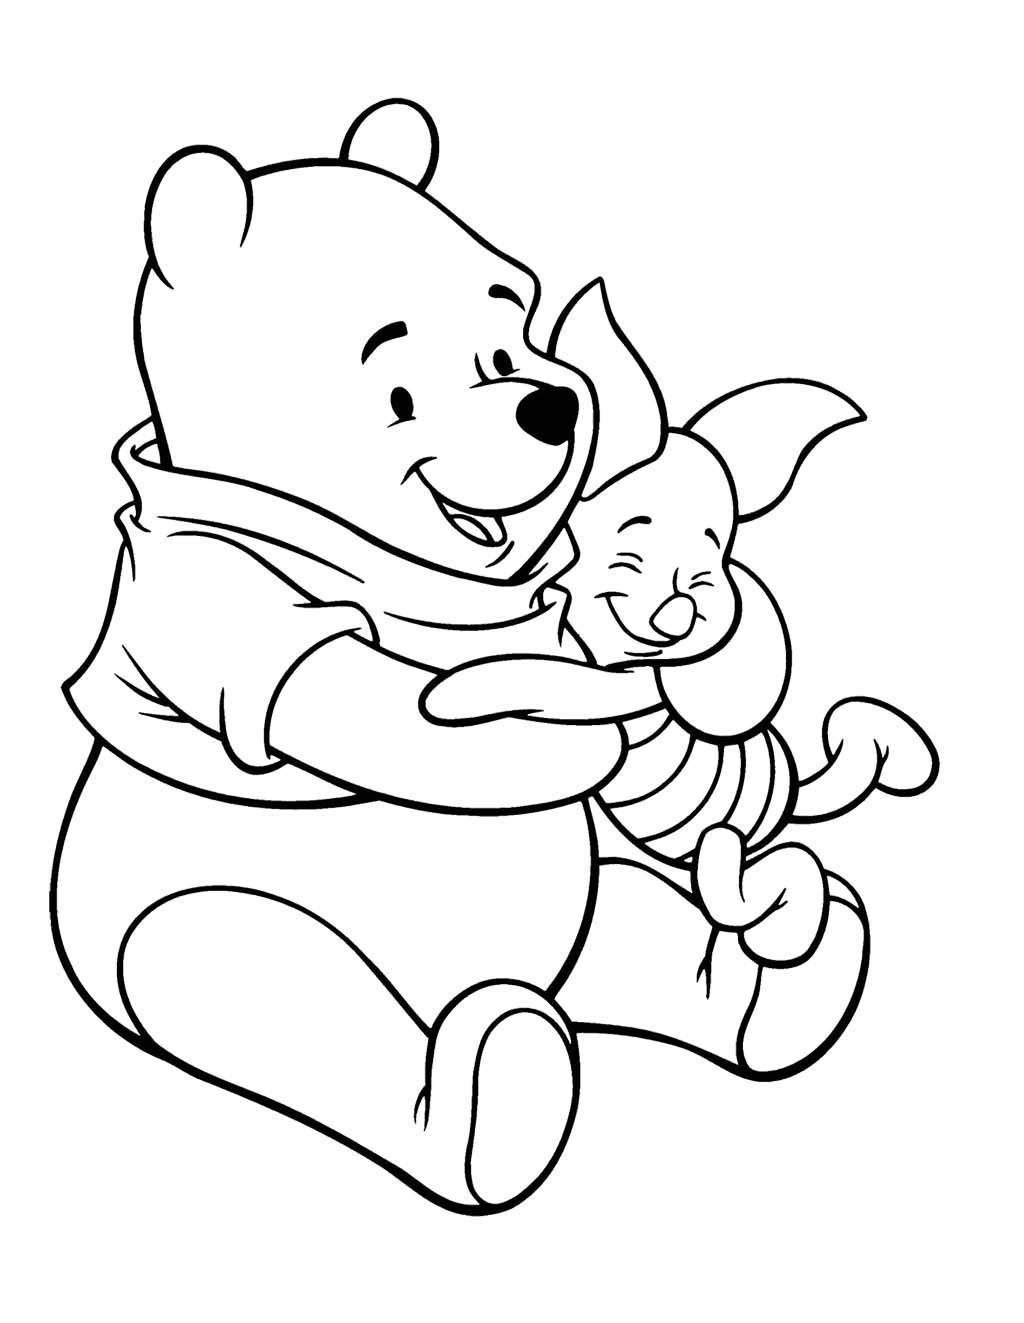 8 pics of piglet tigger and pooh coloring pages winnie the pooh - Tigger Piglet Coloring Pages